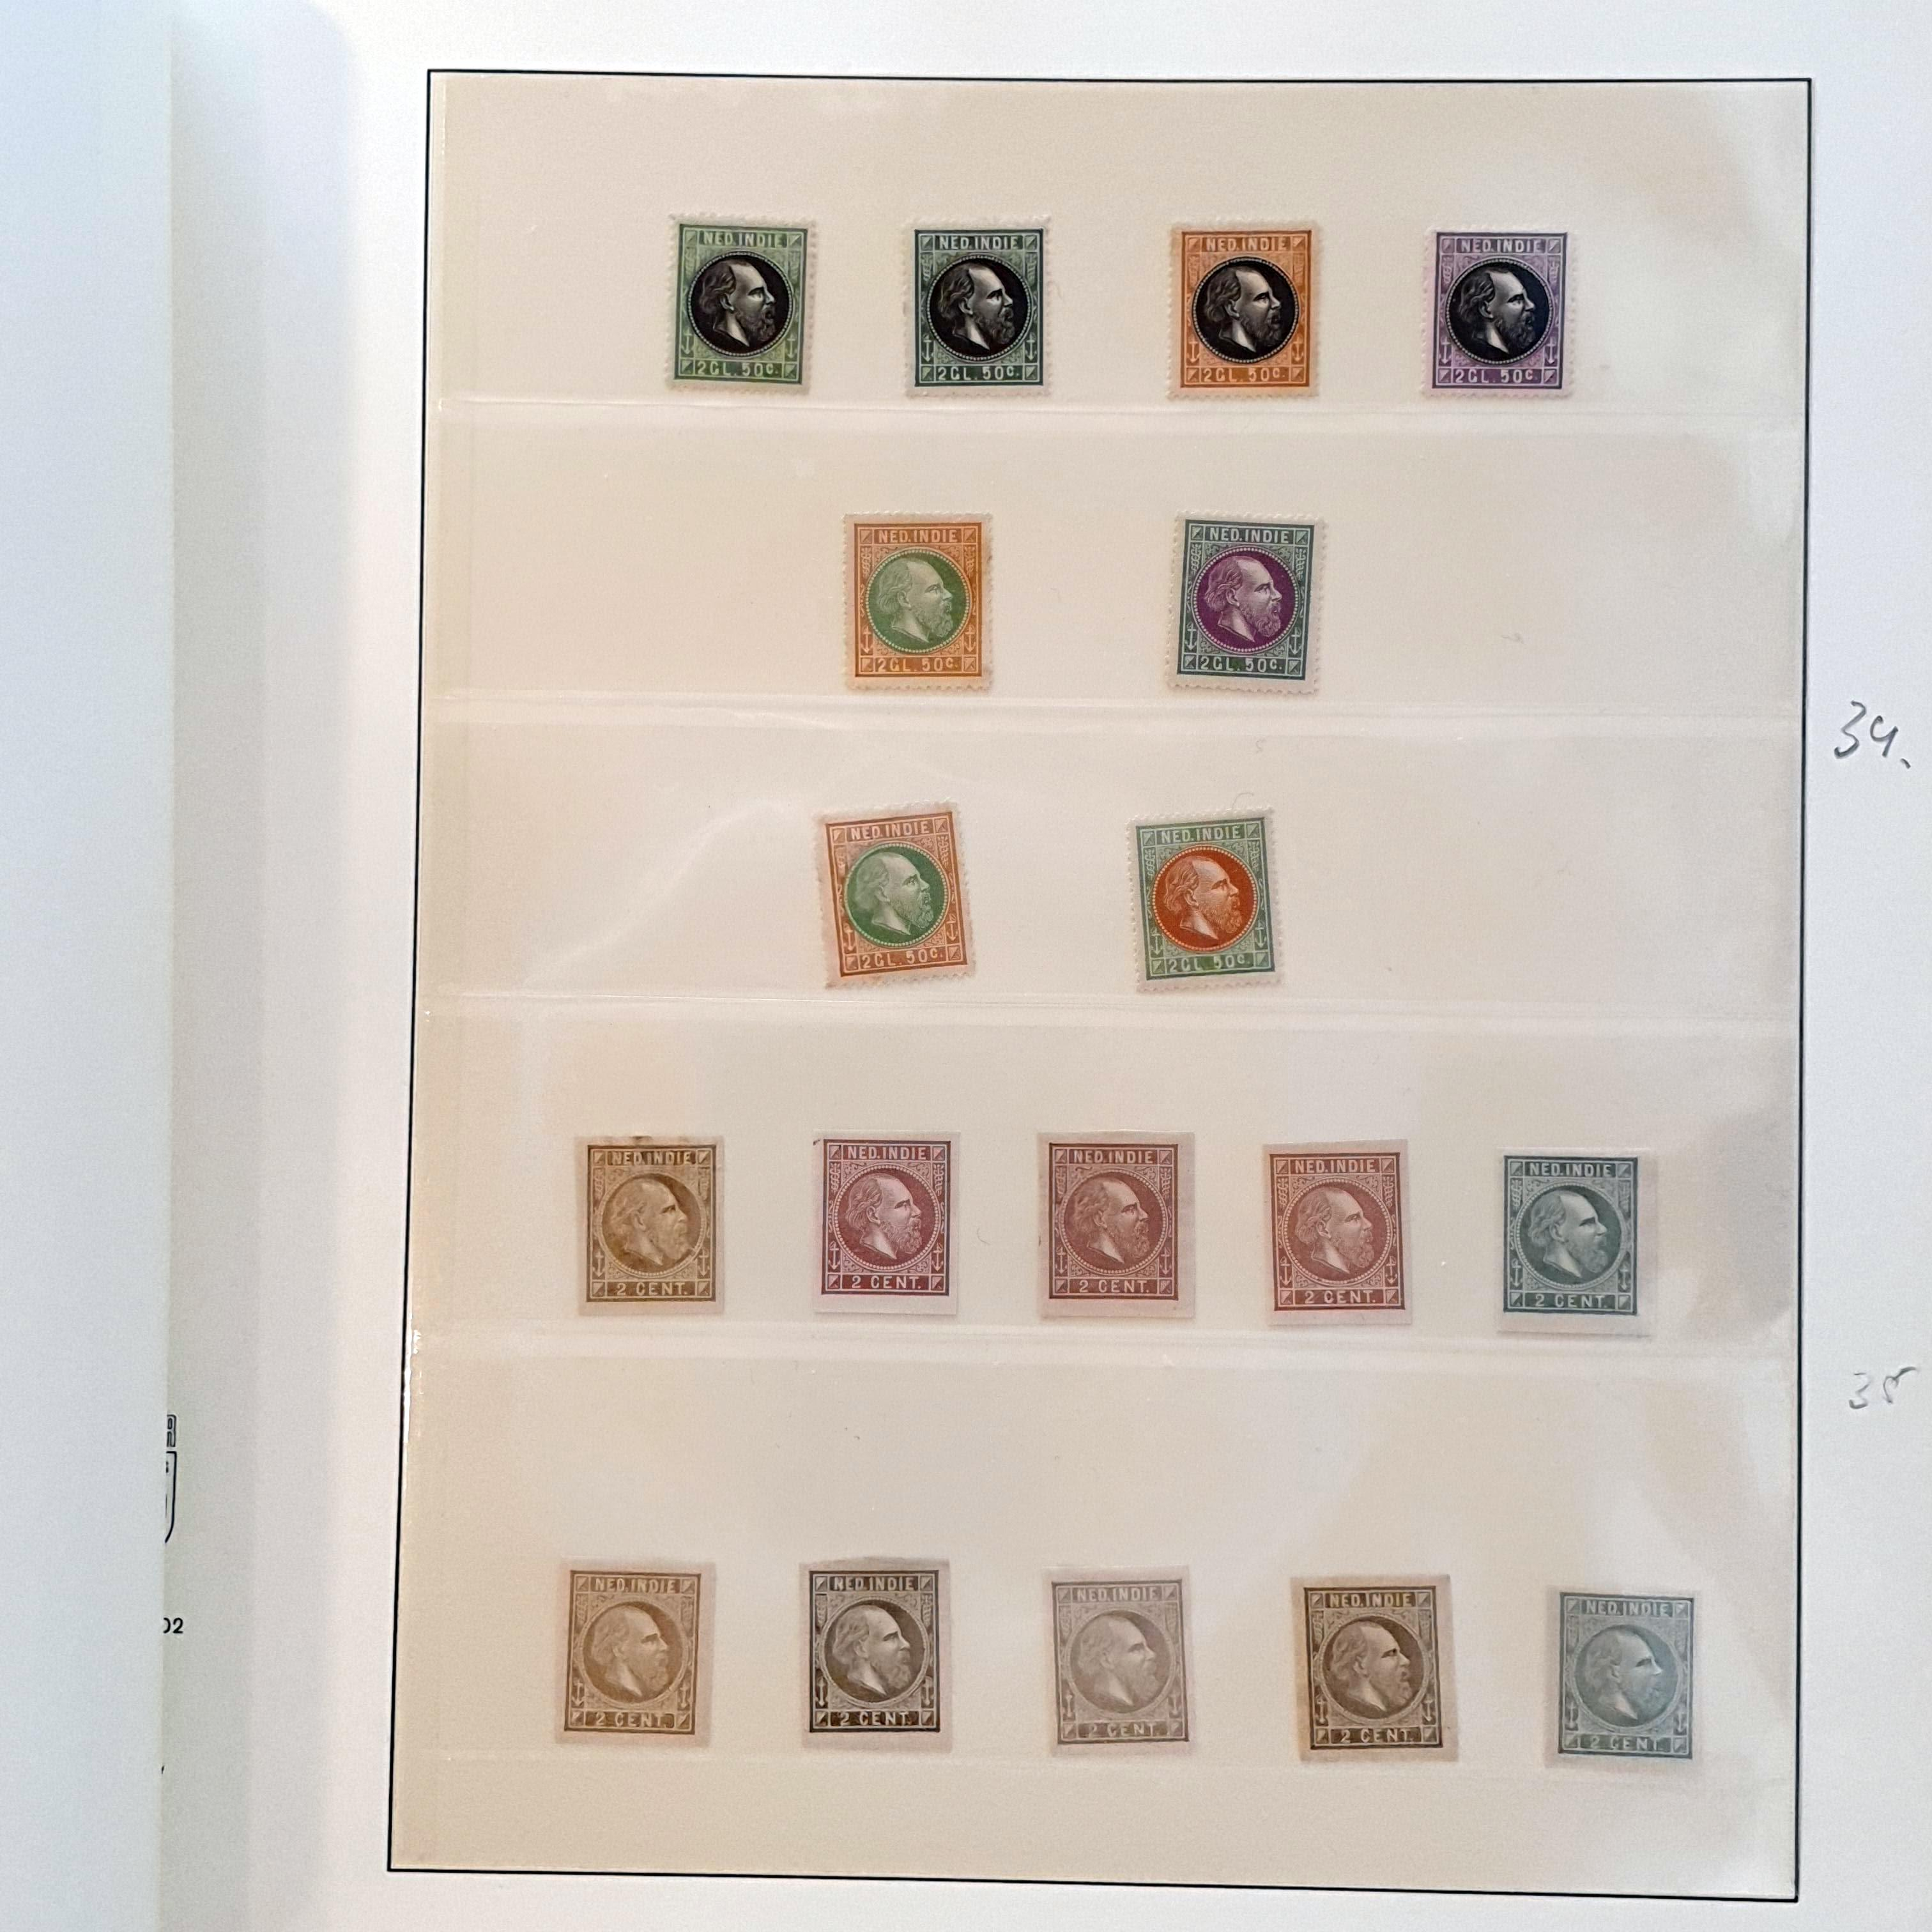 Lot 3308 - Netherlands and former colonies Netherlands Indies -  Corinphila Veilingen Auction 250-253 - Day 4 - Proofs of Netherlands former colonies